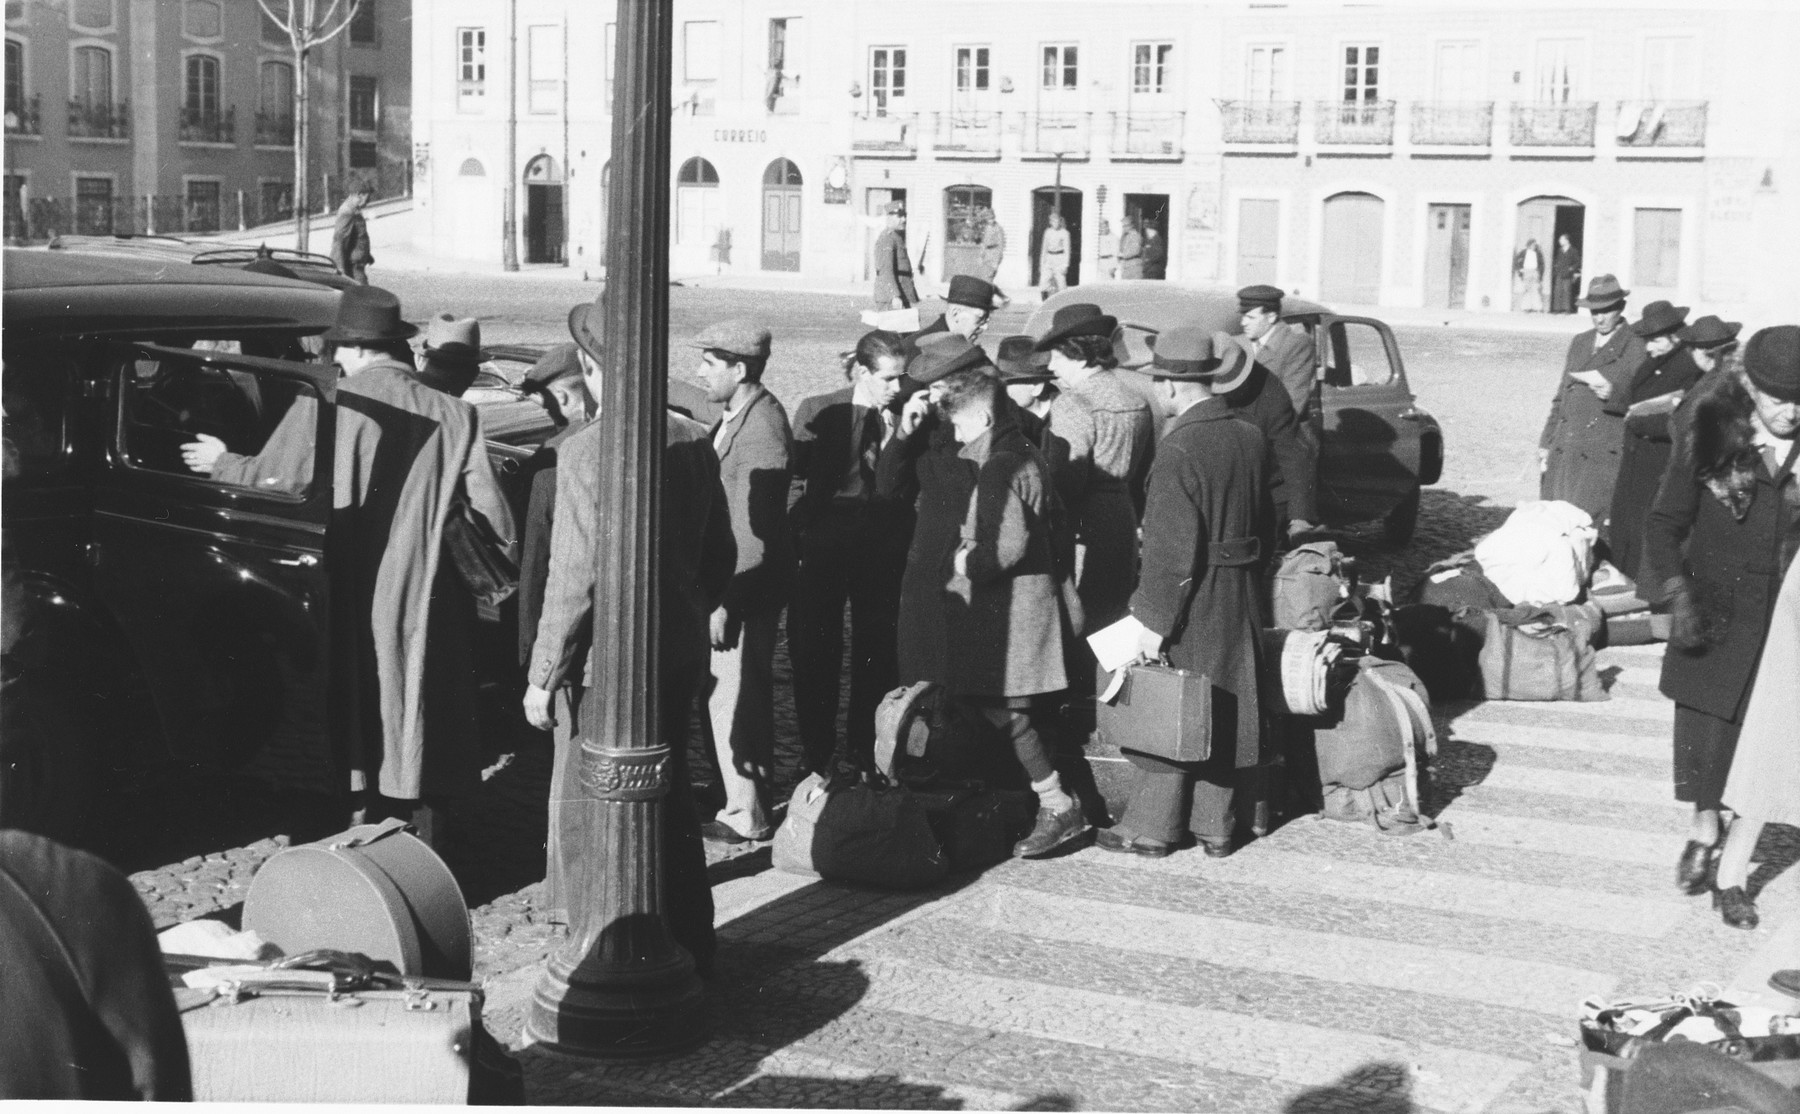 A group of Jewish refugees who have just arrived in Lisbon, get into an automobile, in front of the St. Appolonia train station.